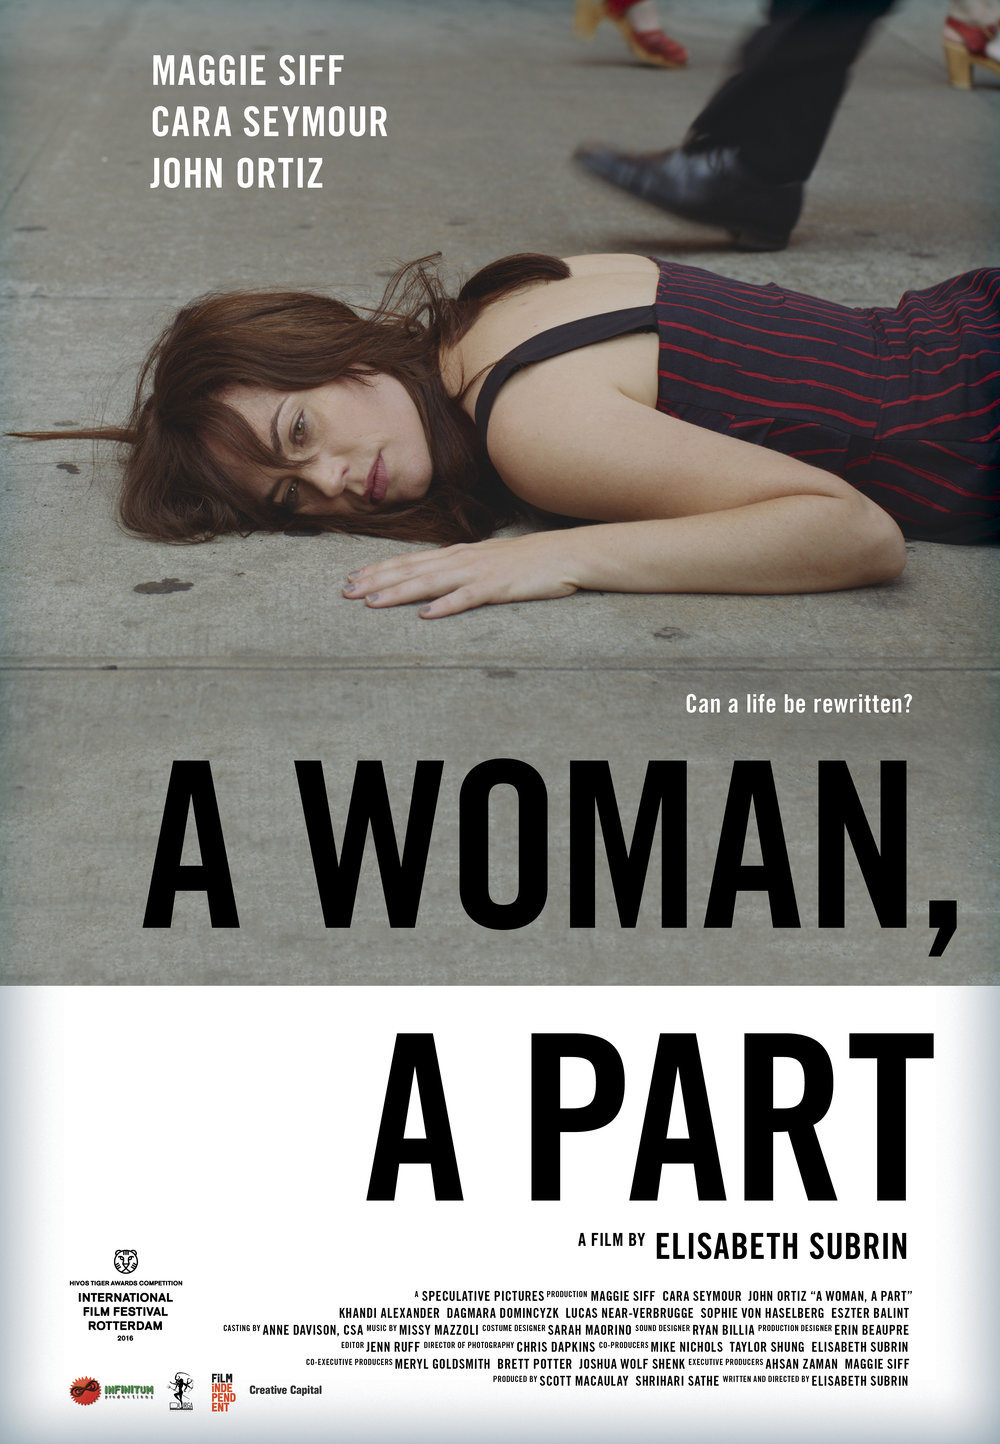 A WOMAN, A PART Film Poster